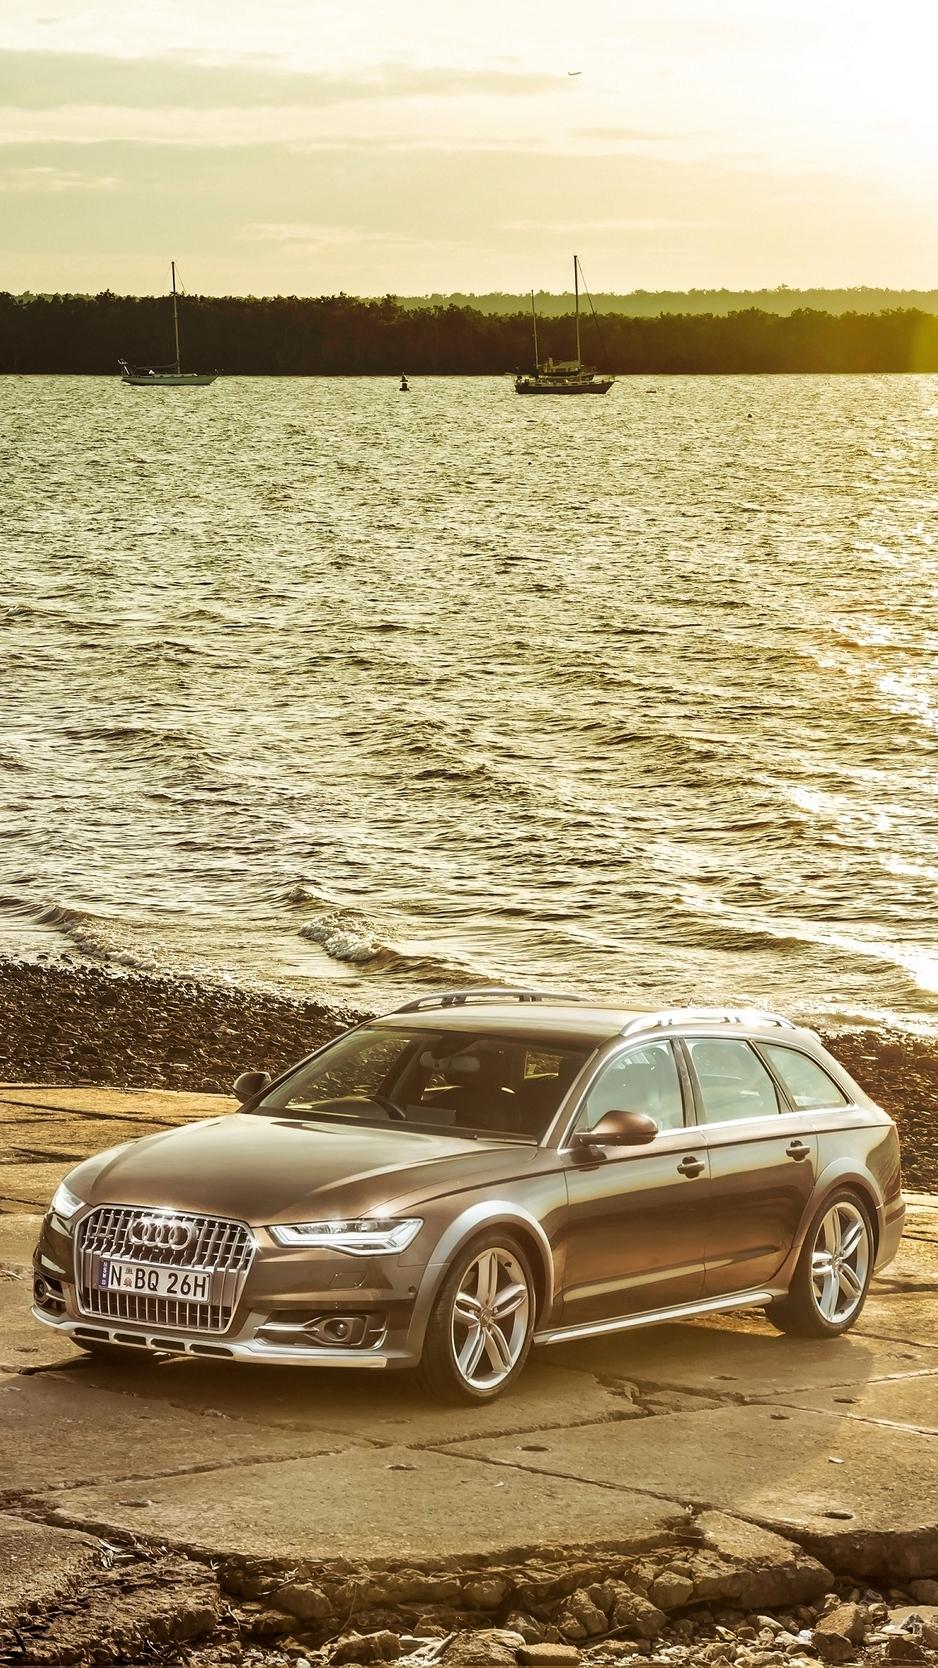 Download wallpaper 938x1668 audi, a6, allroad, side view iphone 8/7 ...